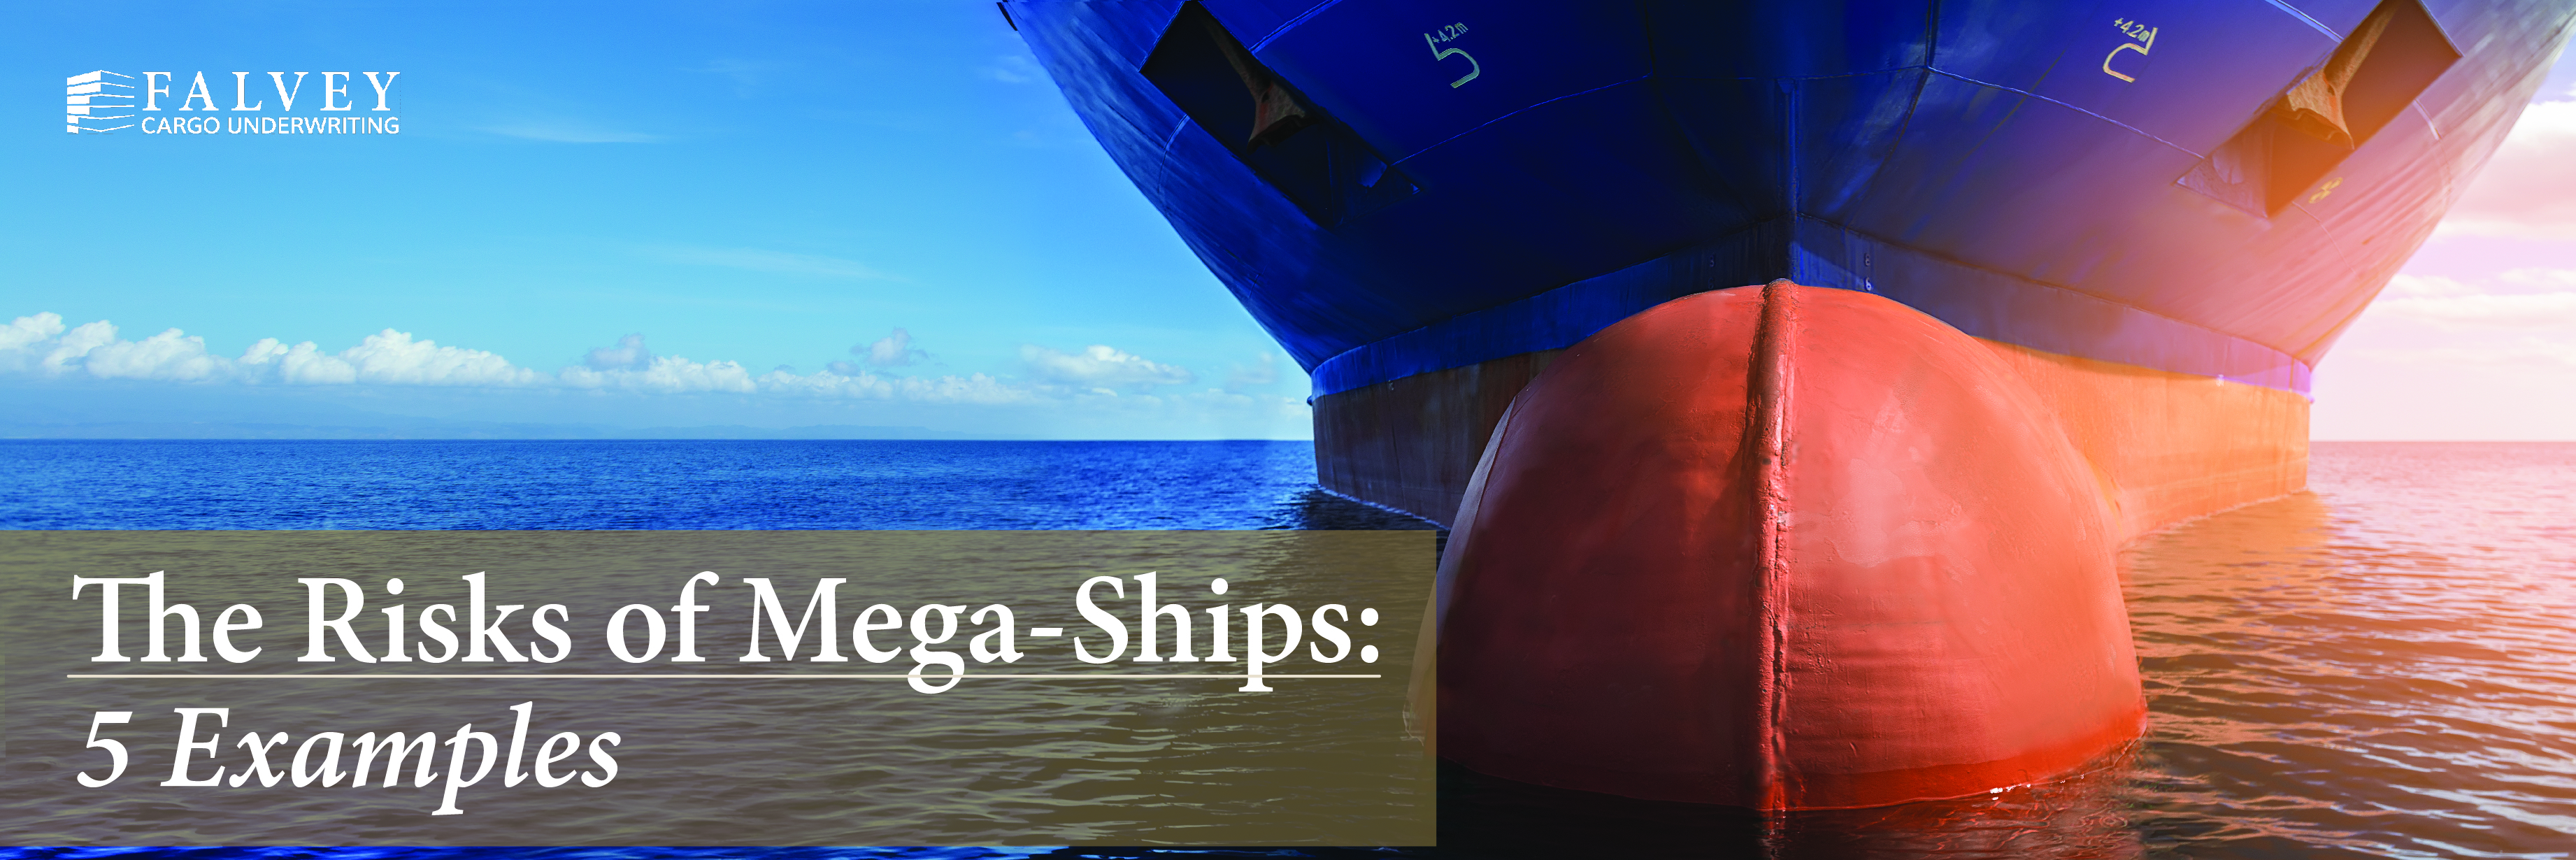 Risks of Megaships